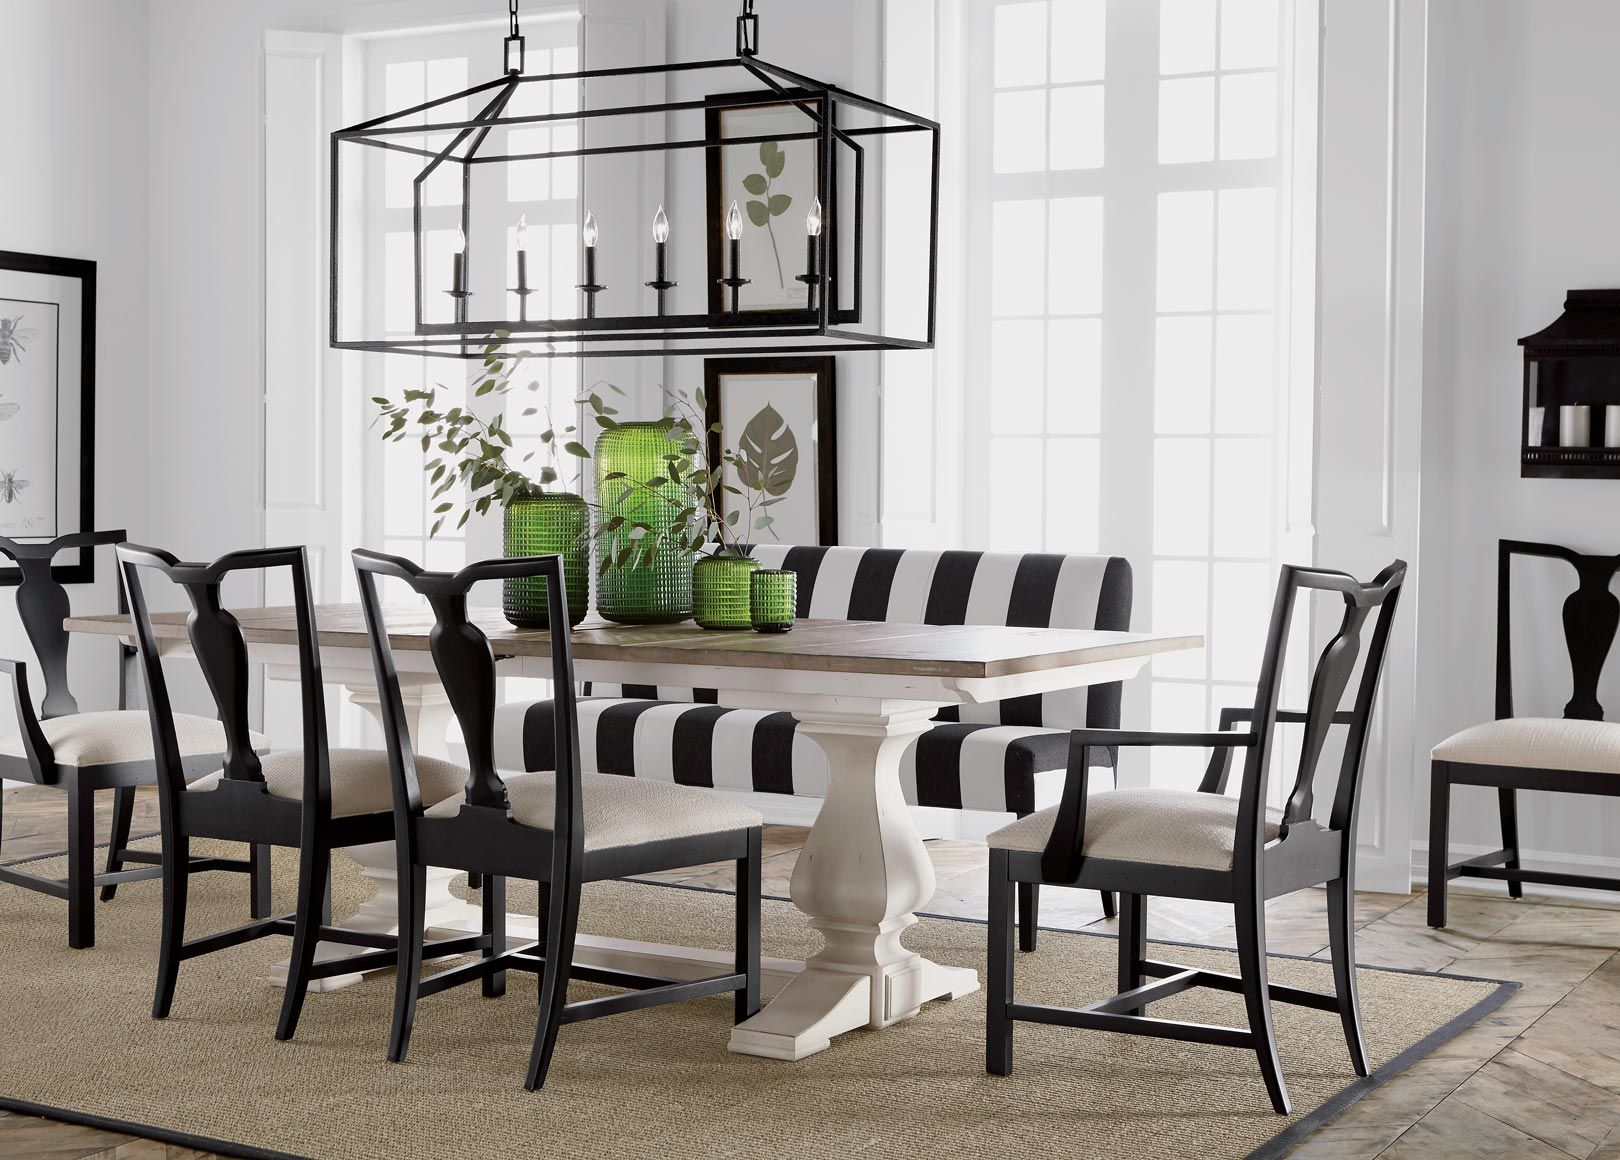 upscale dining room furniture. Back To Black And White Dining Room Step Up Elegance! Our Stately Double Pedestal Table Sets The Tone For An Uptown, Upscale, Utterly Delightful Upscale Furniture Q